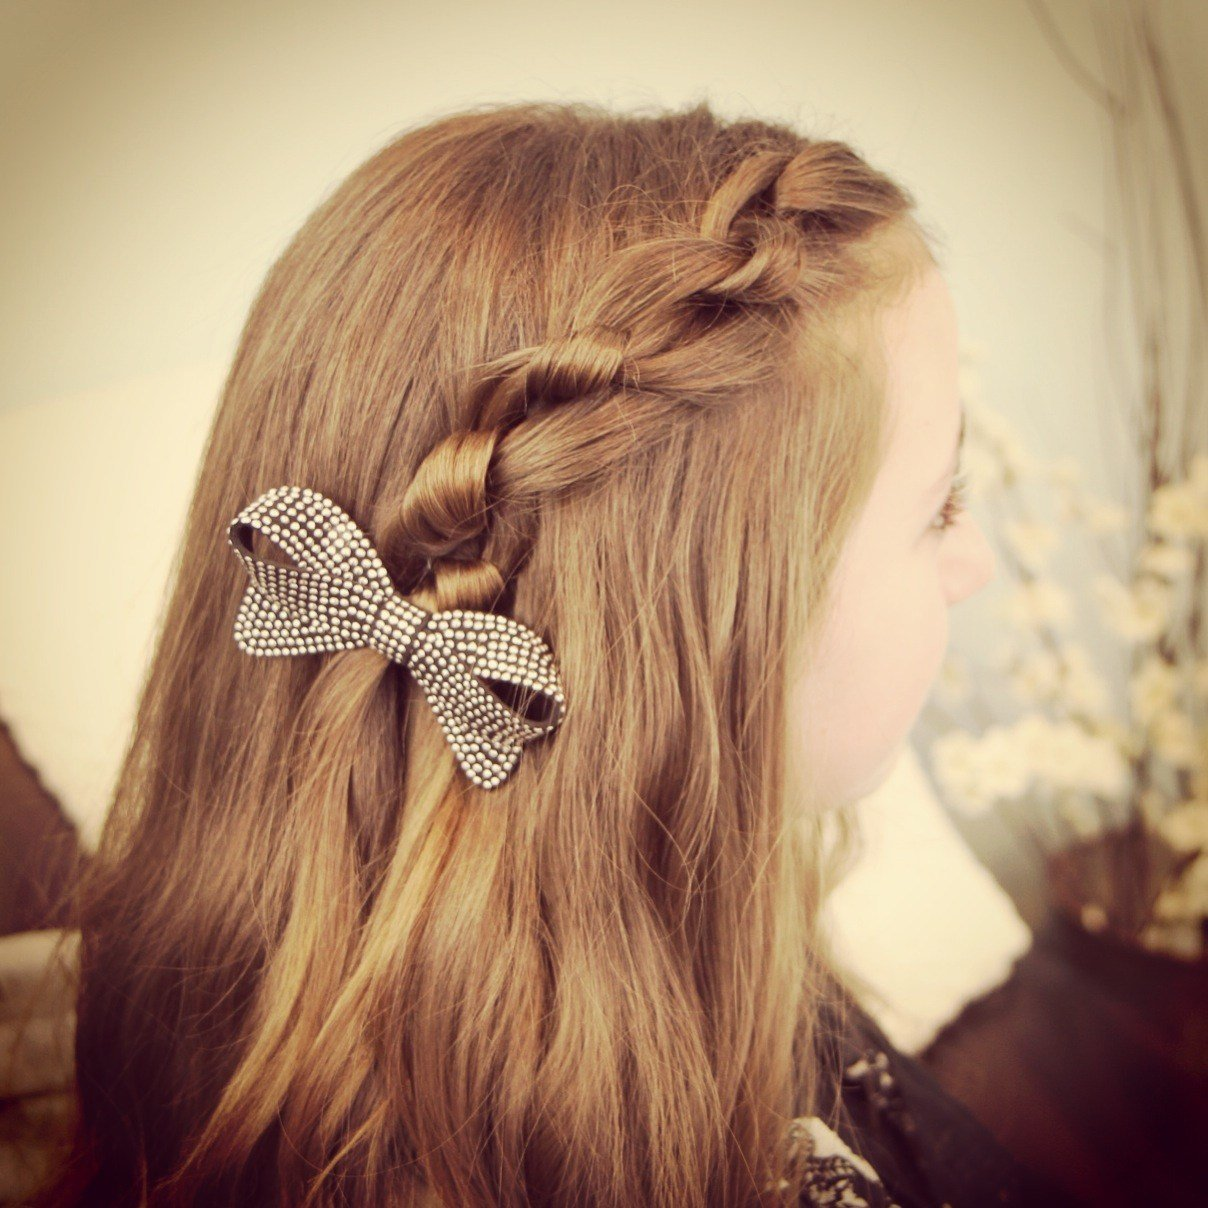 The Best Photo 4 Cute Girls Hairstyles Pictures